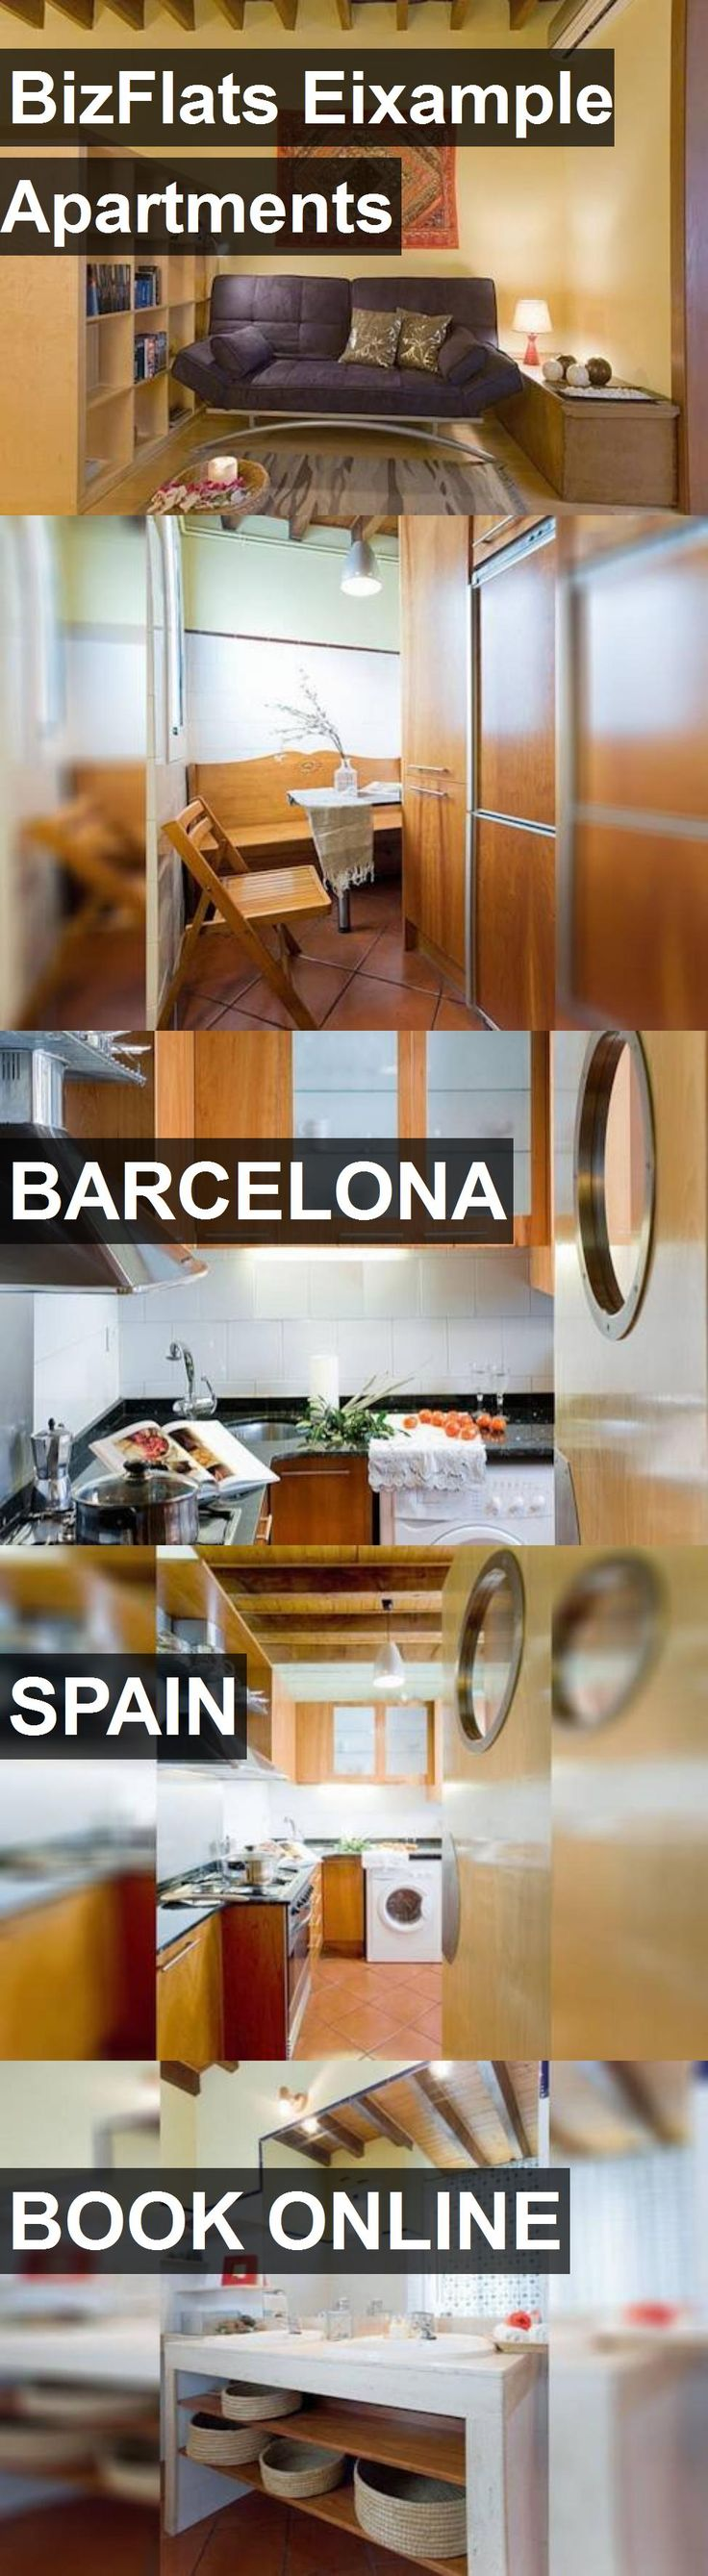 BizFlats Eixample Apartments in Barcelona, Spain. For more information, photos, reviews and best prices please follow the link. #Spain #Barcelona #travel #vacation #apartment